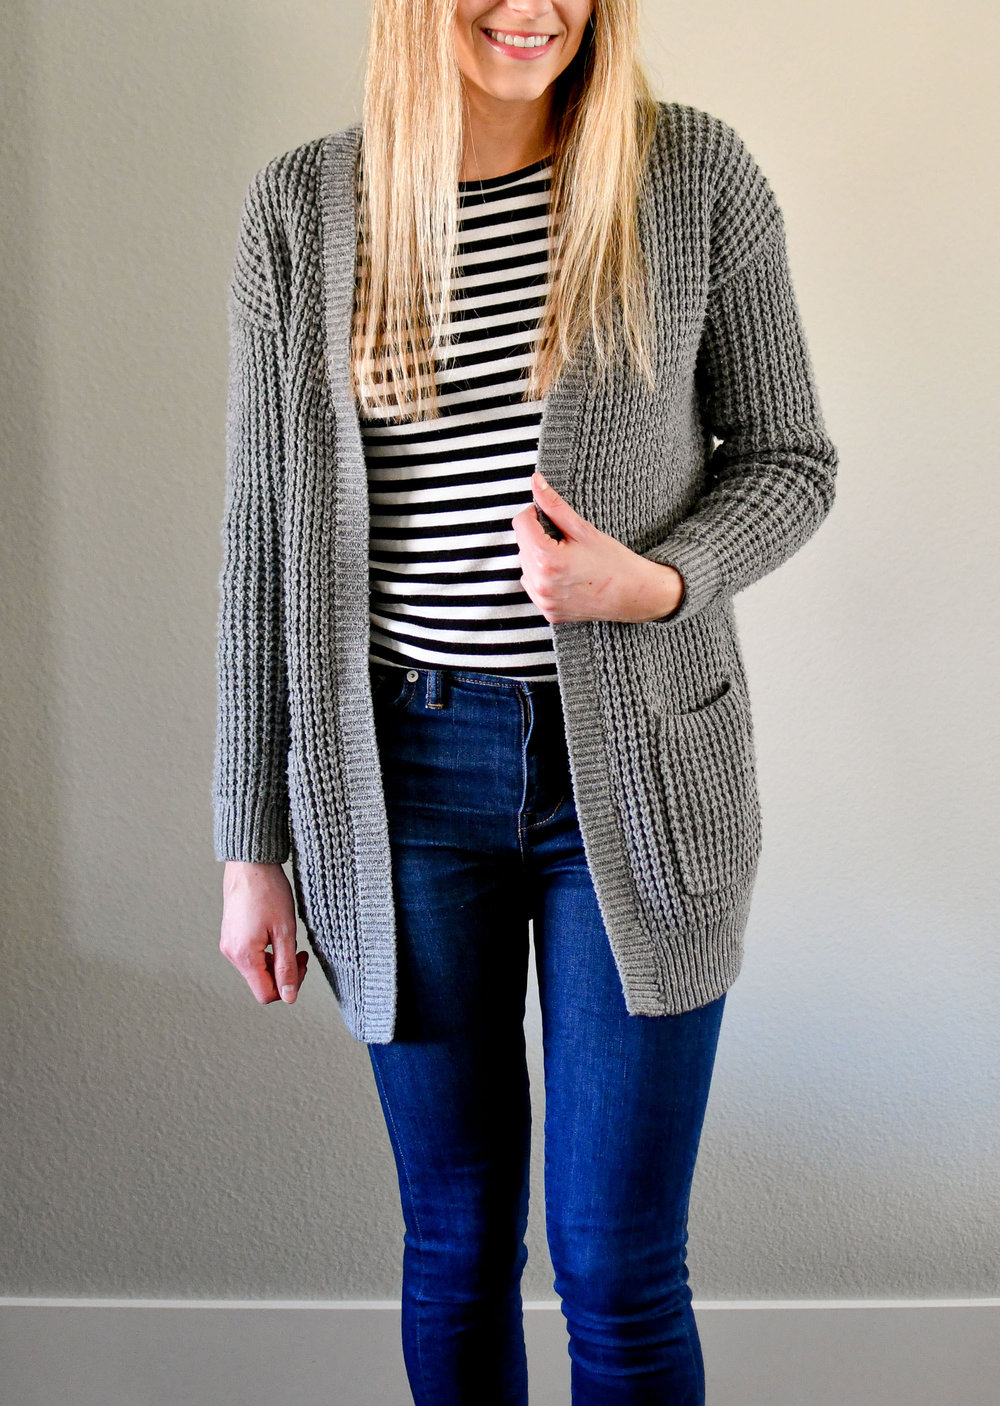 Grey cardigan casual winter outfit with striped tee — Cotton Cashmere Cat Hair